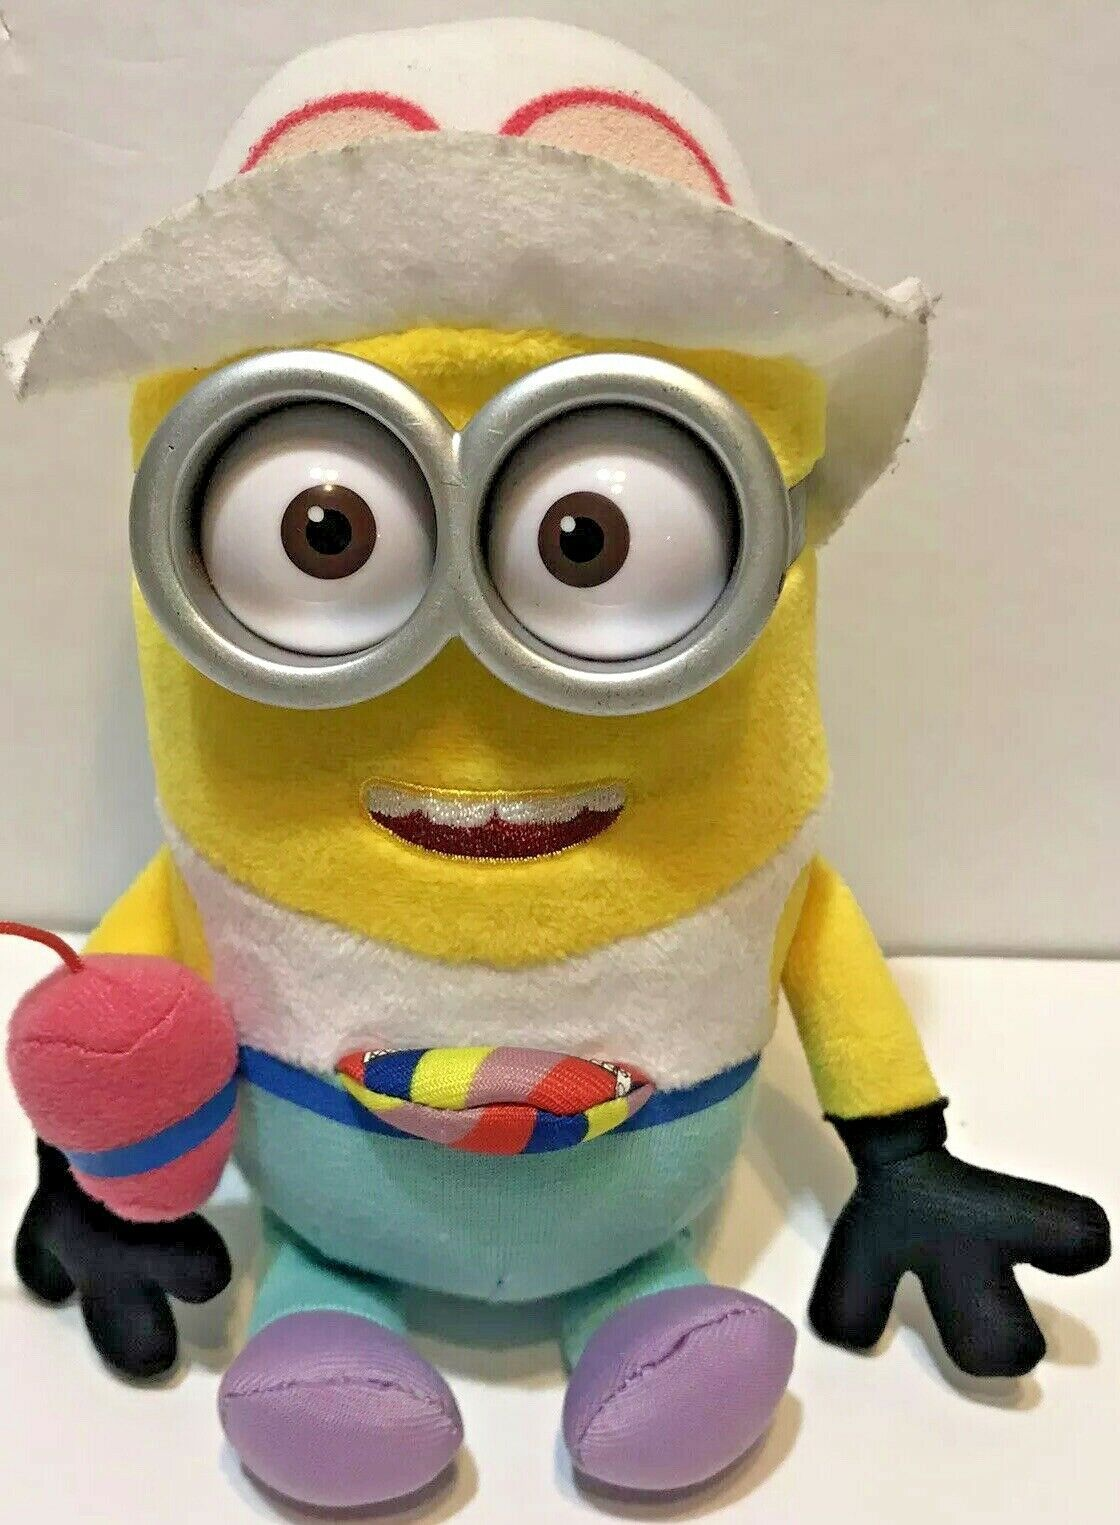 """Ty Beanie Babies Minion Despicable Me 3 Jerry in Tourist Outfit Bean Plush 8"""" - $13.59"""